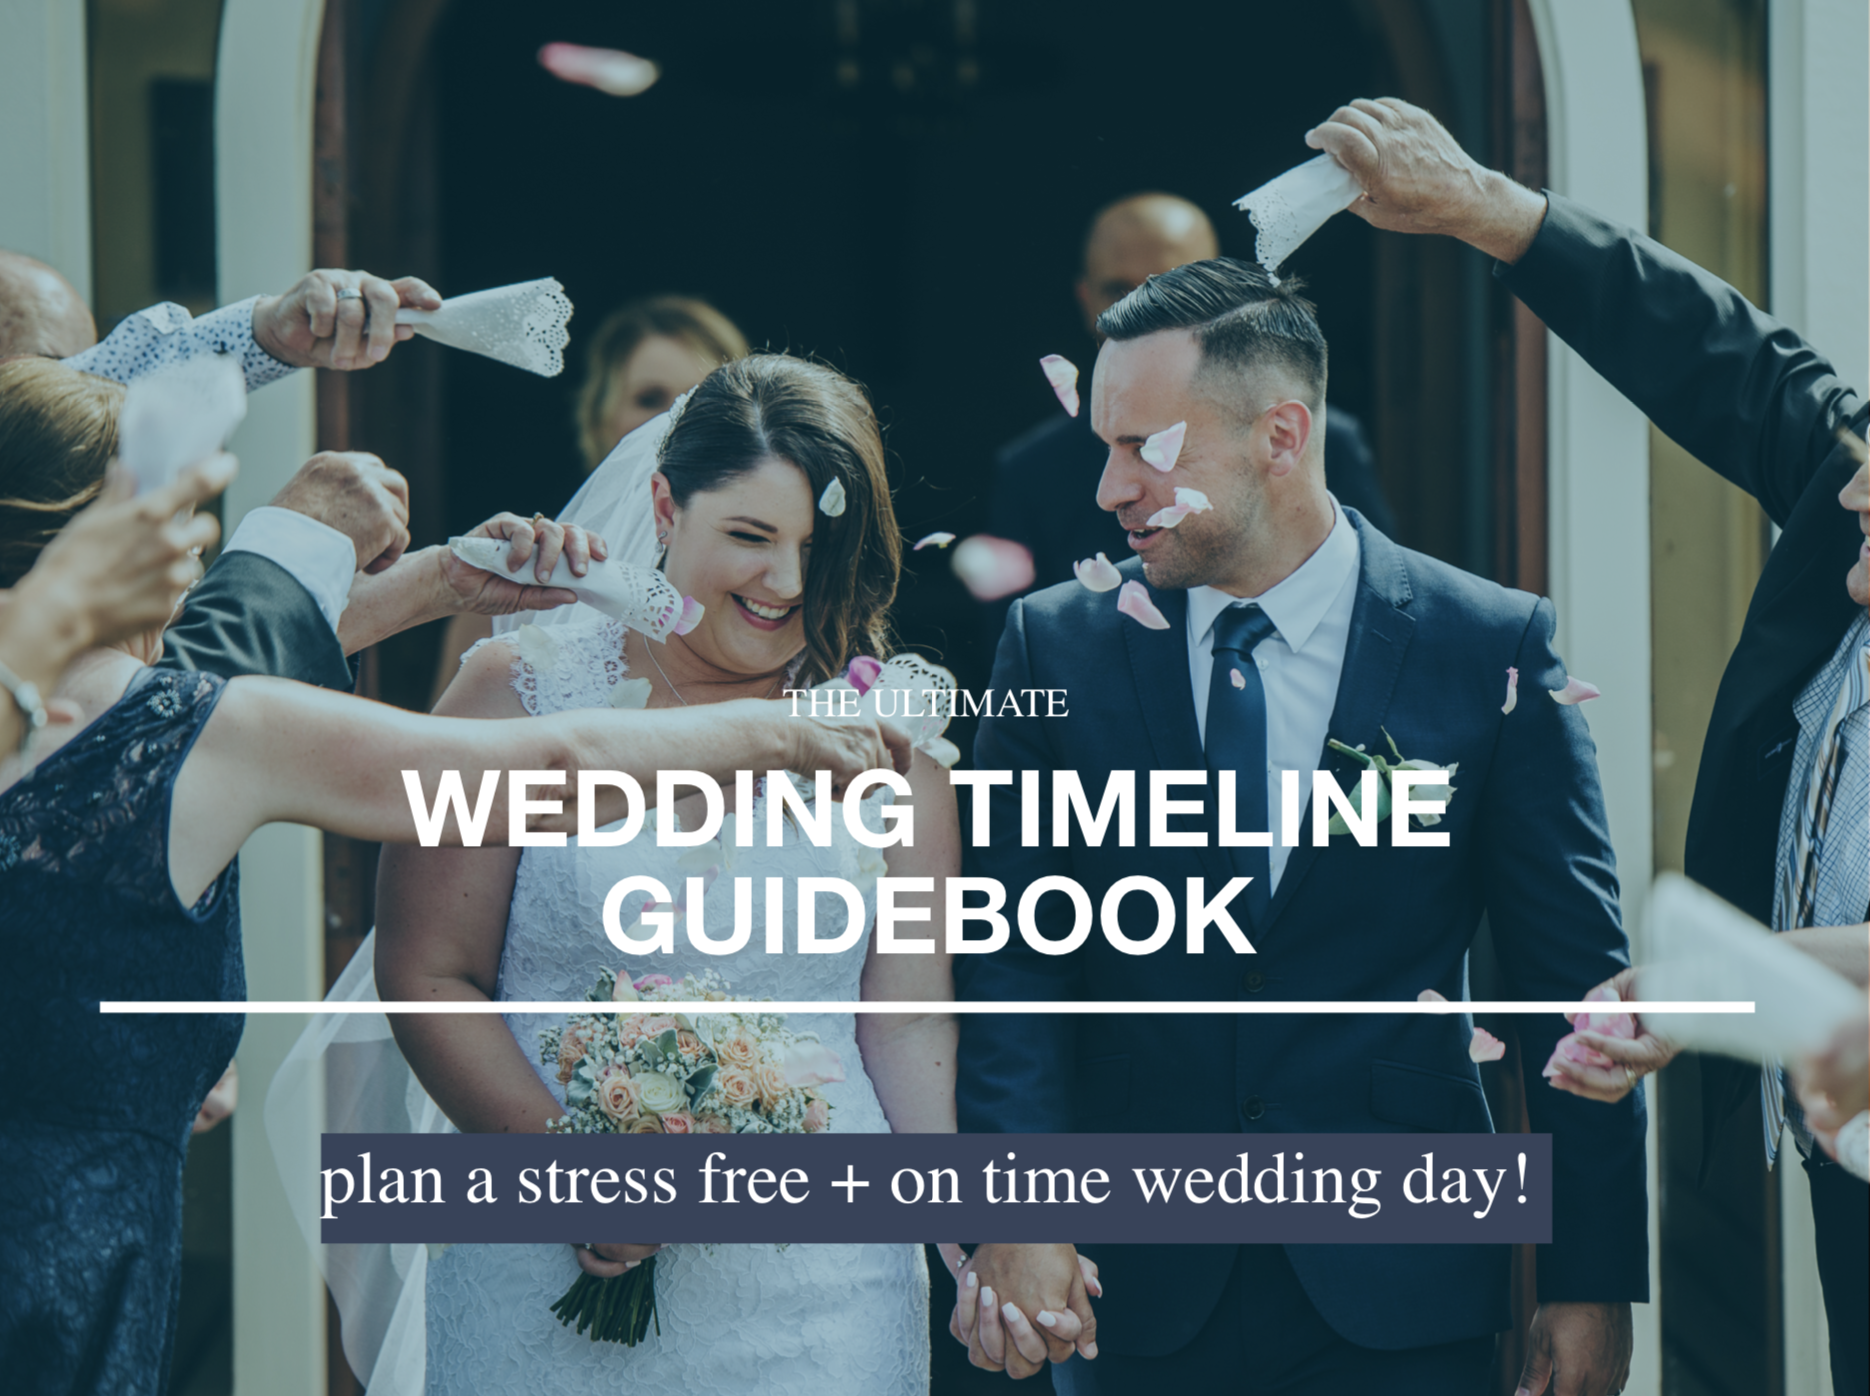 wedding time guidebook